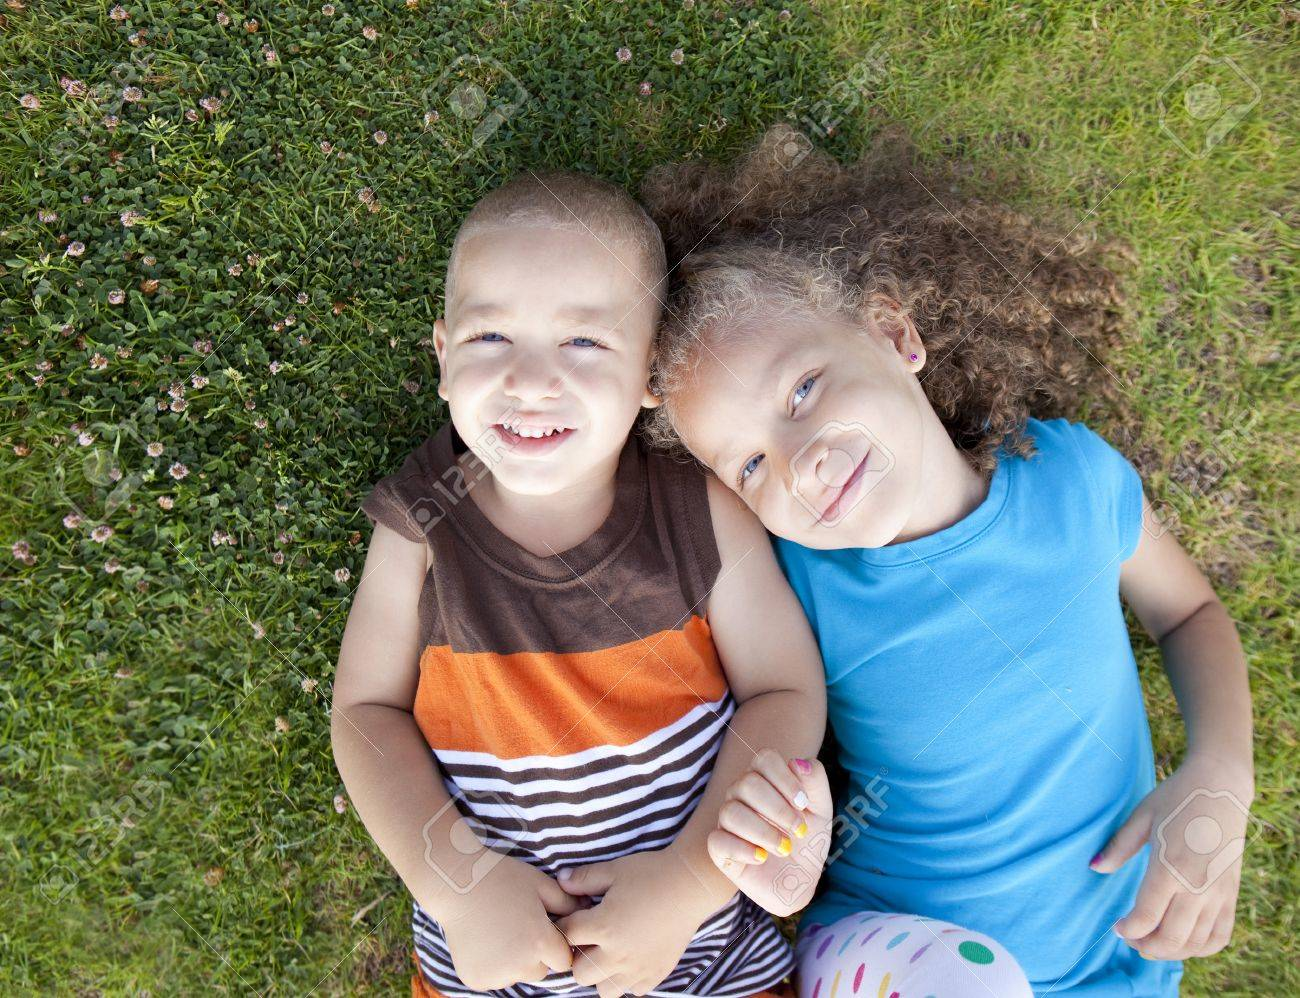 Brother and sister playing at a park - 10946651